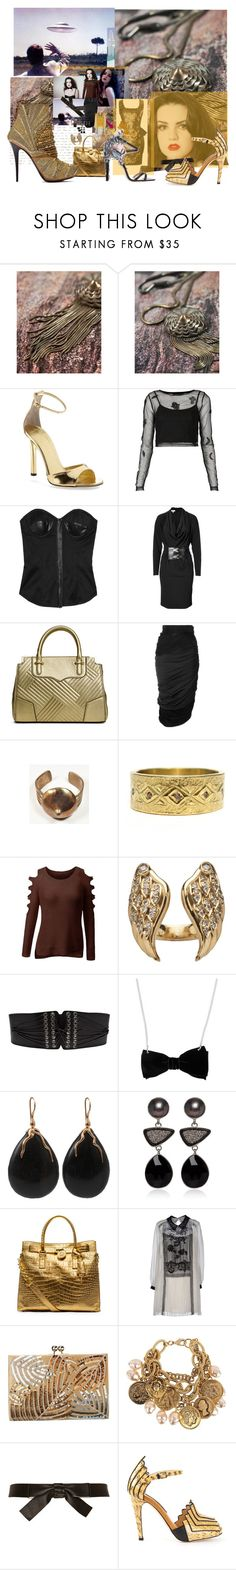 """The Search for Alien Gold"" by aciellelacie ❤ liked on Polyvore featuring All For the Mountain, Tamara Mellon, Topshop, Alexander Wang, Michael Kors, Rebecca Minkoff, Vionnet, John Galliano, Nicholas Kirkwood and Alexander McQueen"